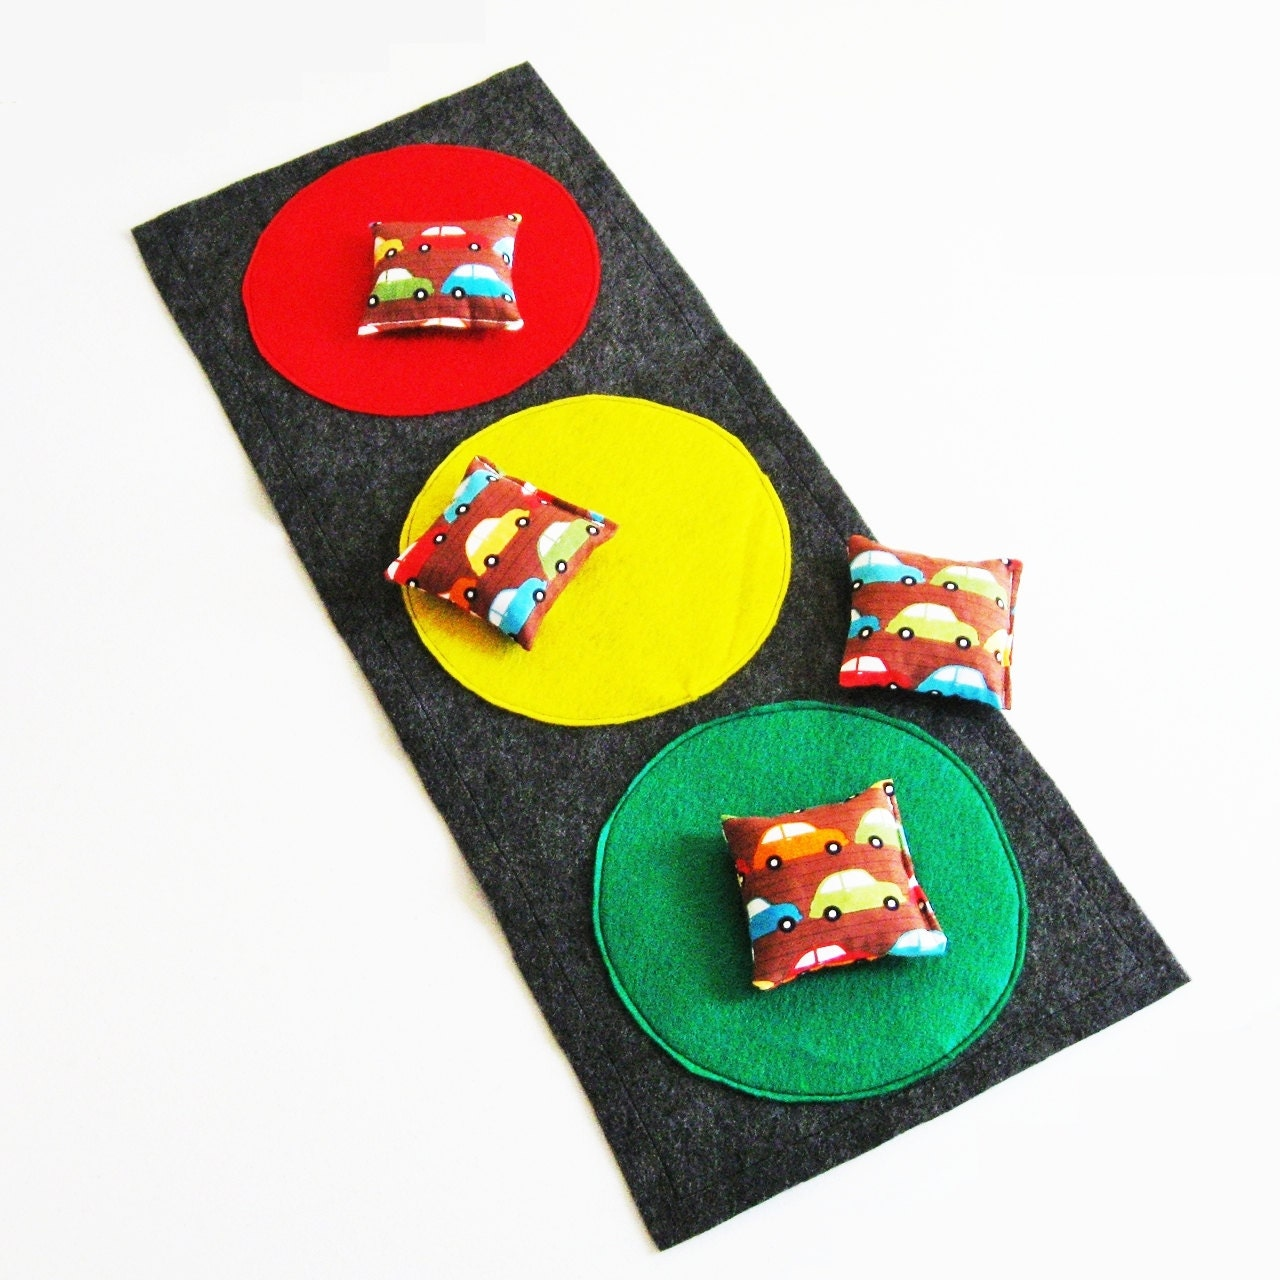 Cars Bean Bag Toss Game - Traffic Stoplight - Party Game / Favors - 4 bean bags, target mat and storage sack - EnchantedDandelions